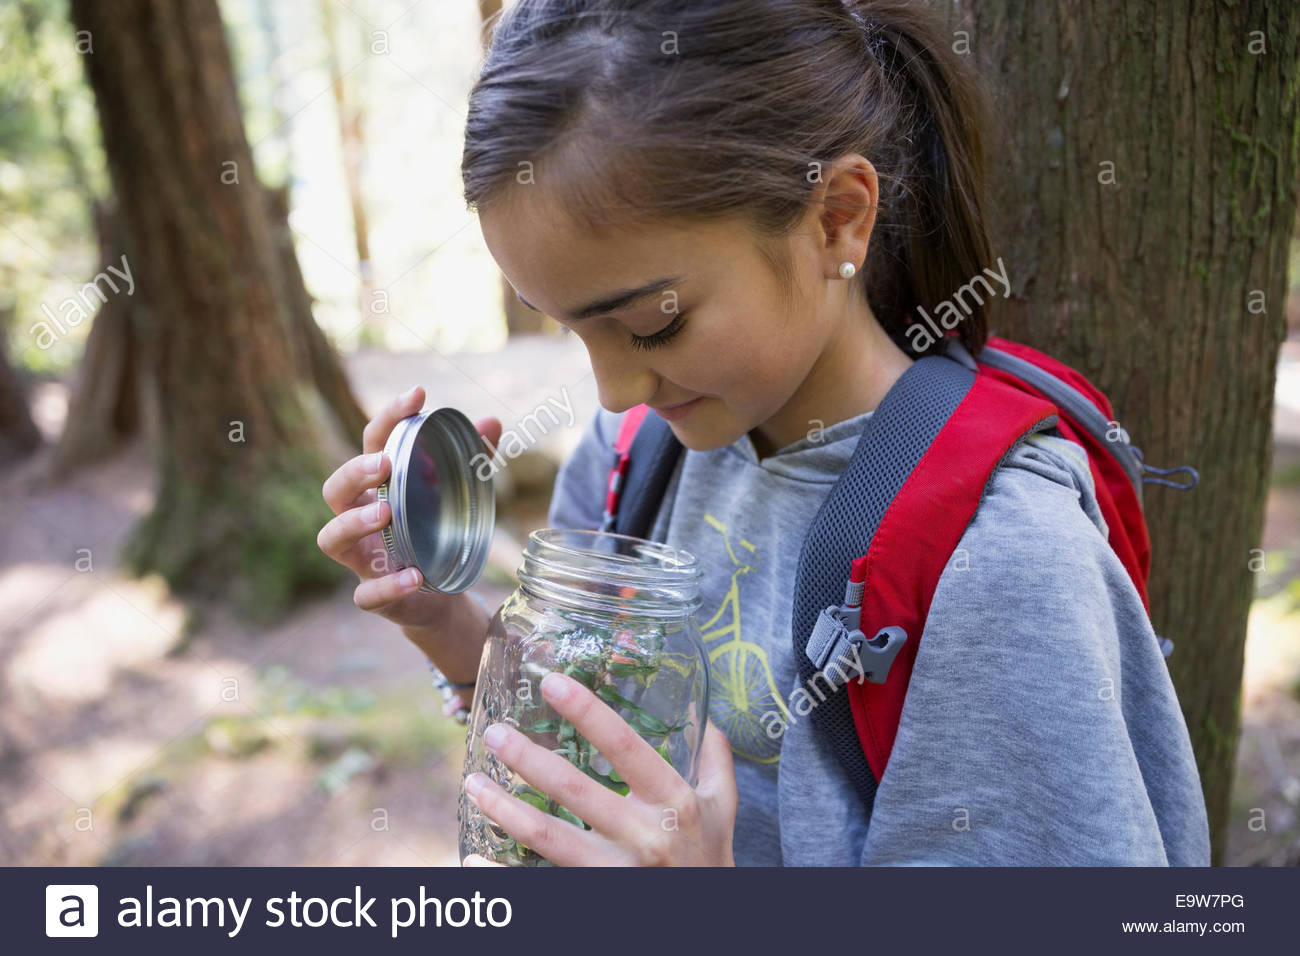 Girl in woods opening jar containing plants - Stock Image